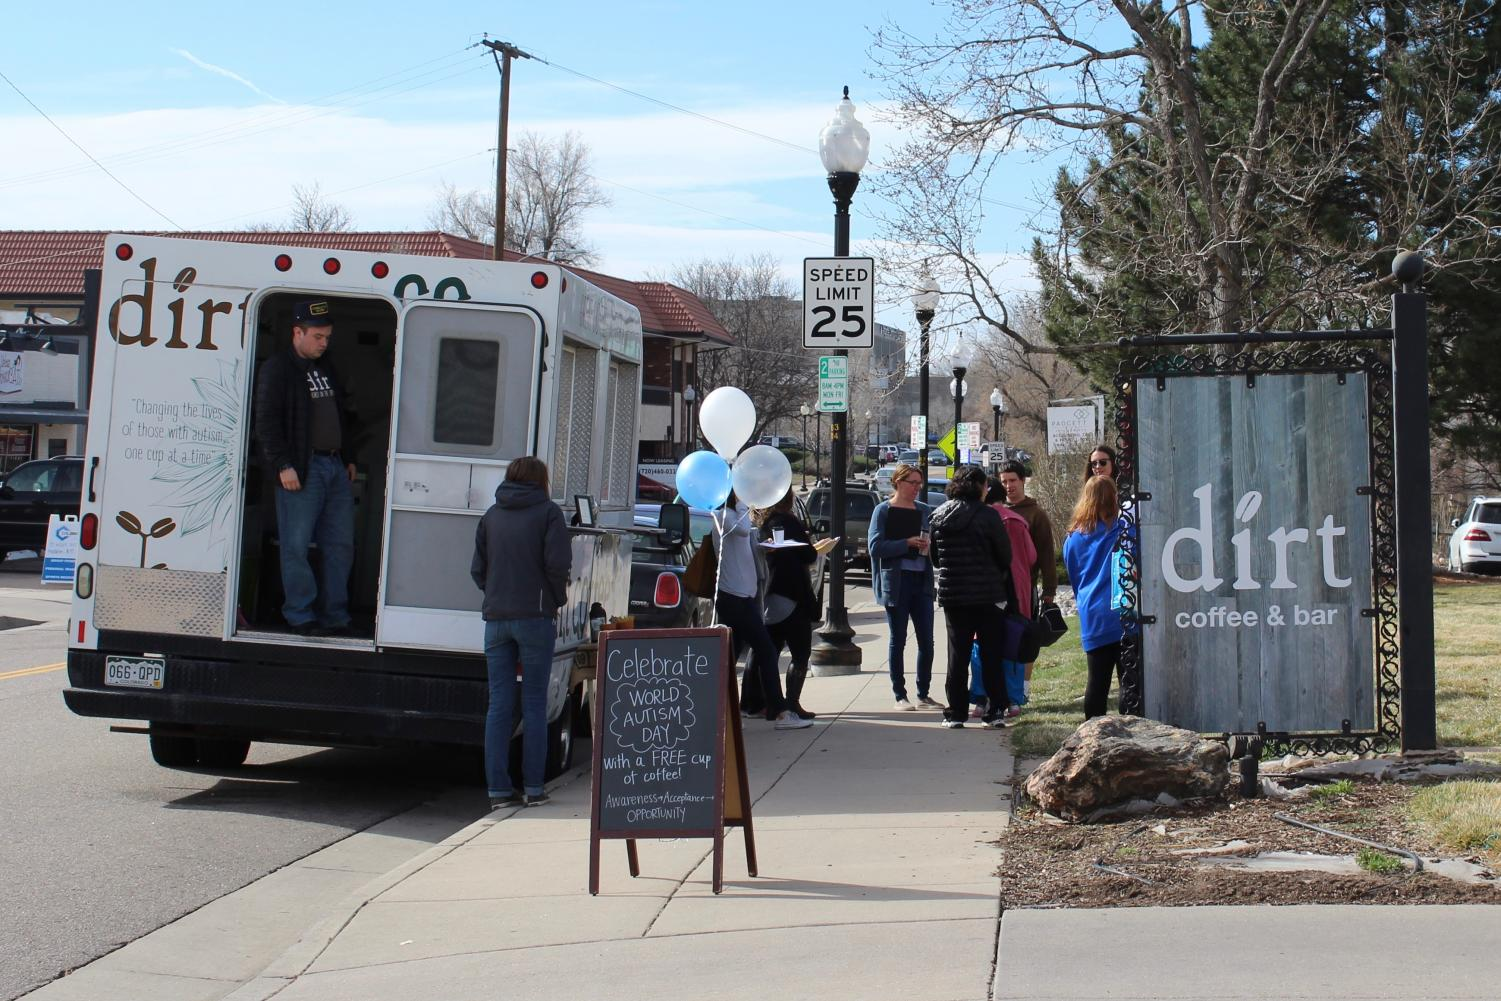 Dirt Coffee celebrates World Autism Day with free coffee in Littleton, Colo., Monday April 2, 2018.